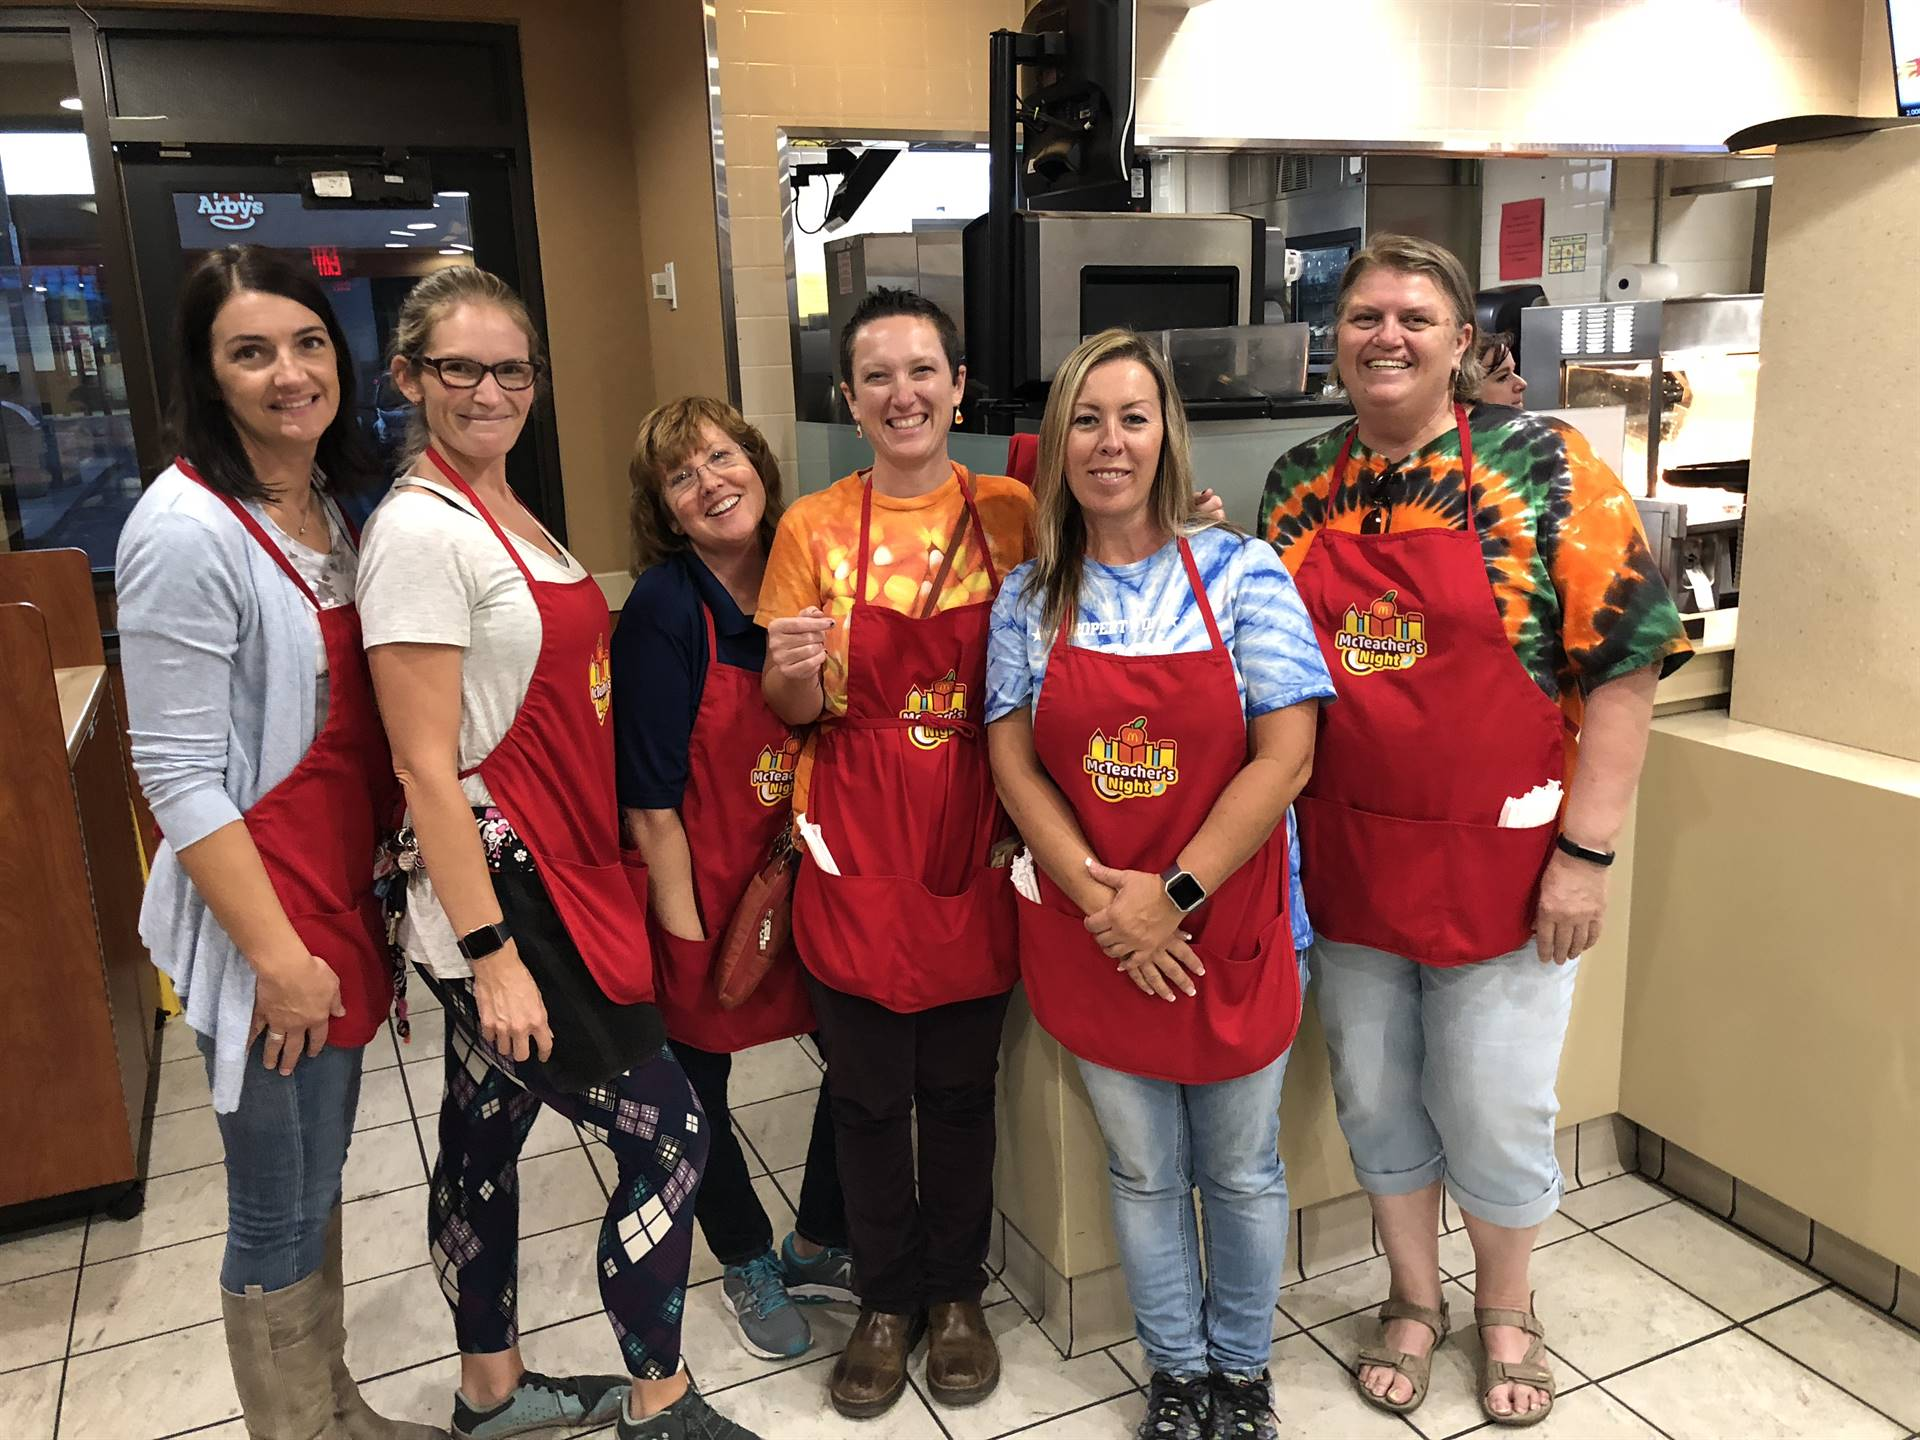 7 McTeacher's Night at McDonald's